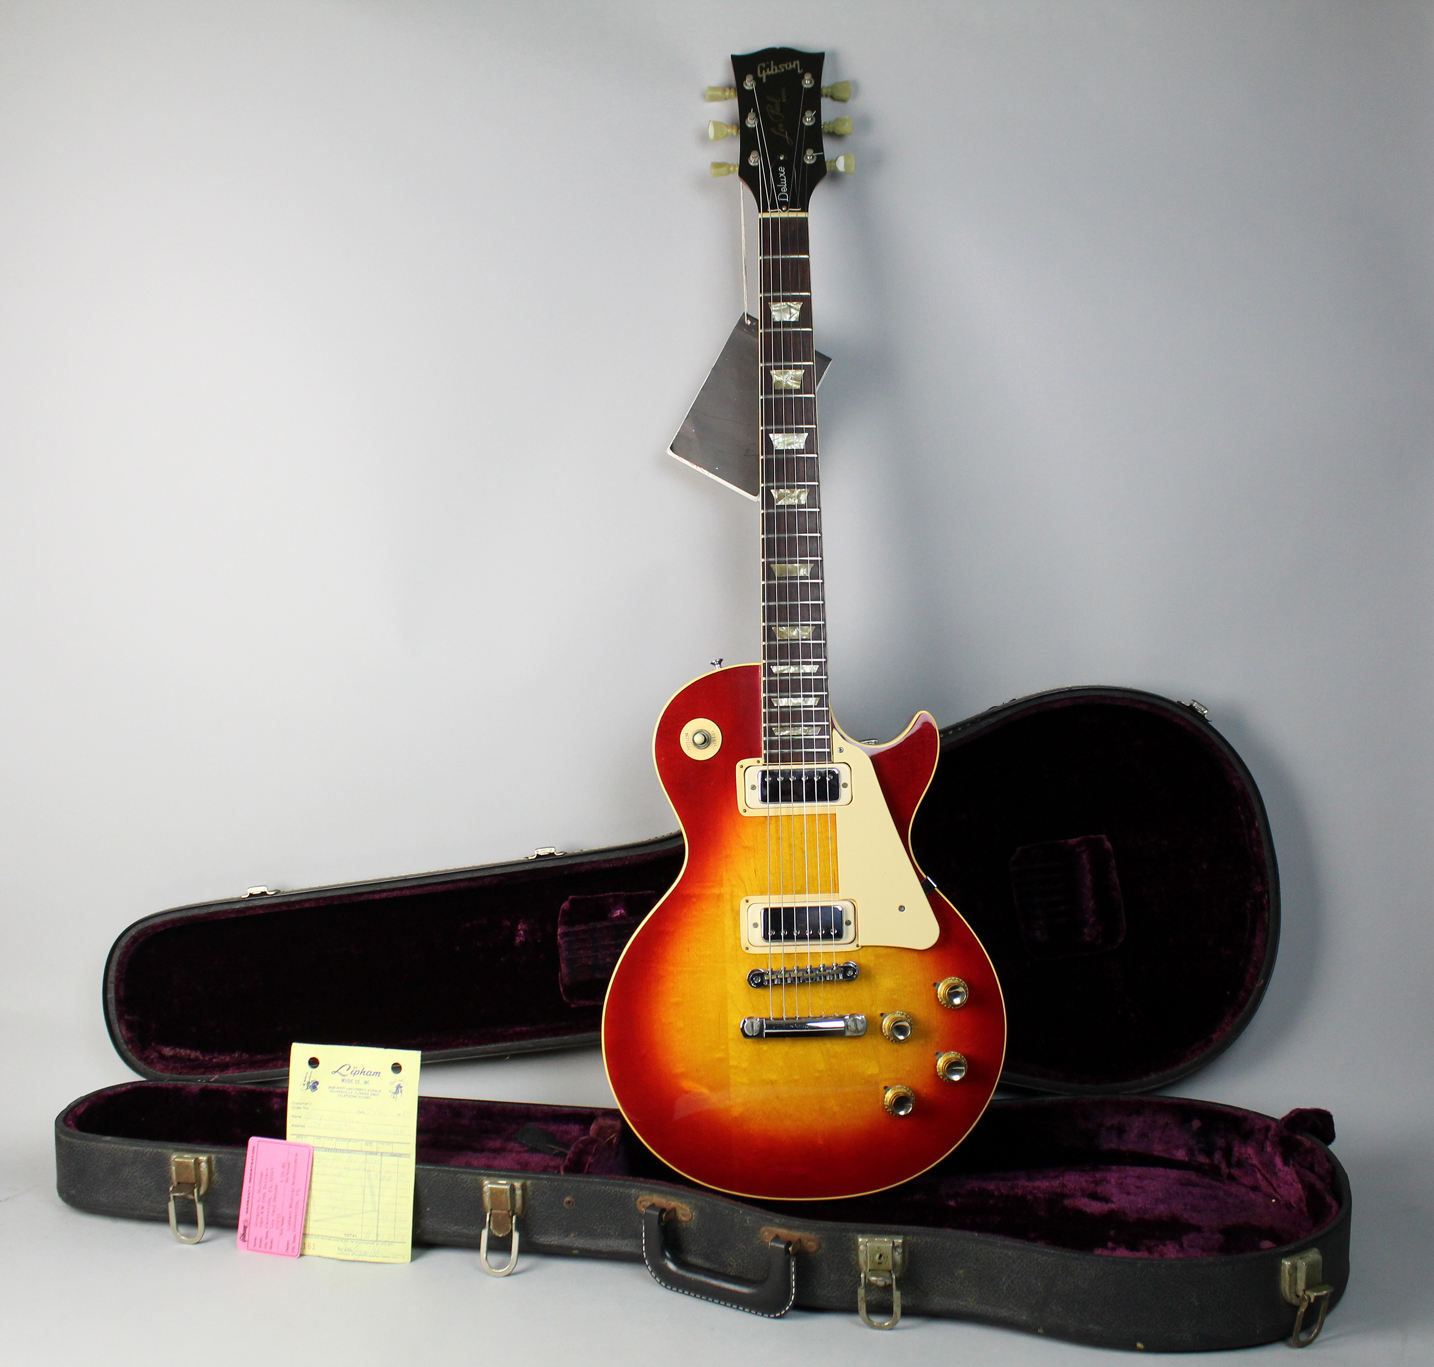 1974 gibson les paul deluxe sunburst guitars electric solid body Gibson Les Paul Heritage Series 1974 gibson les paul deluxe sunburst electric guitar w ohsc and case candy